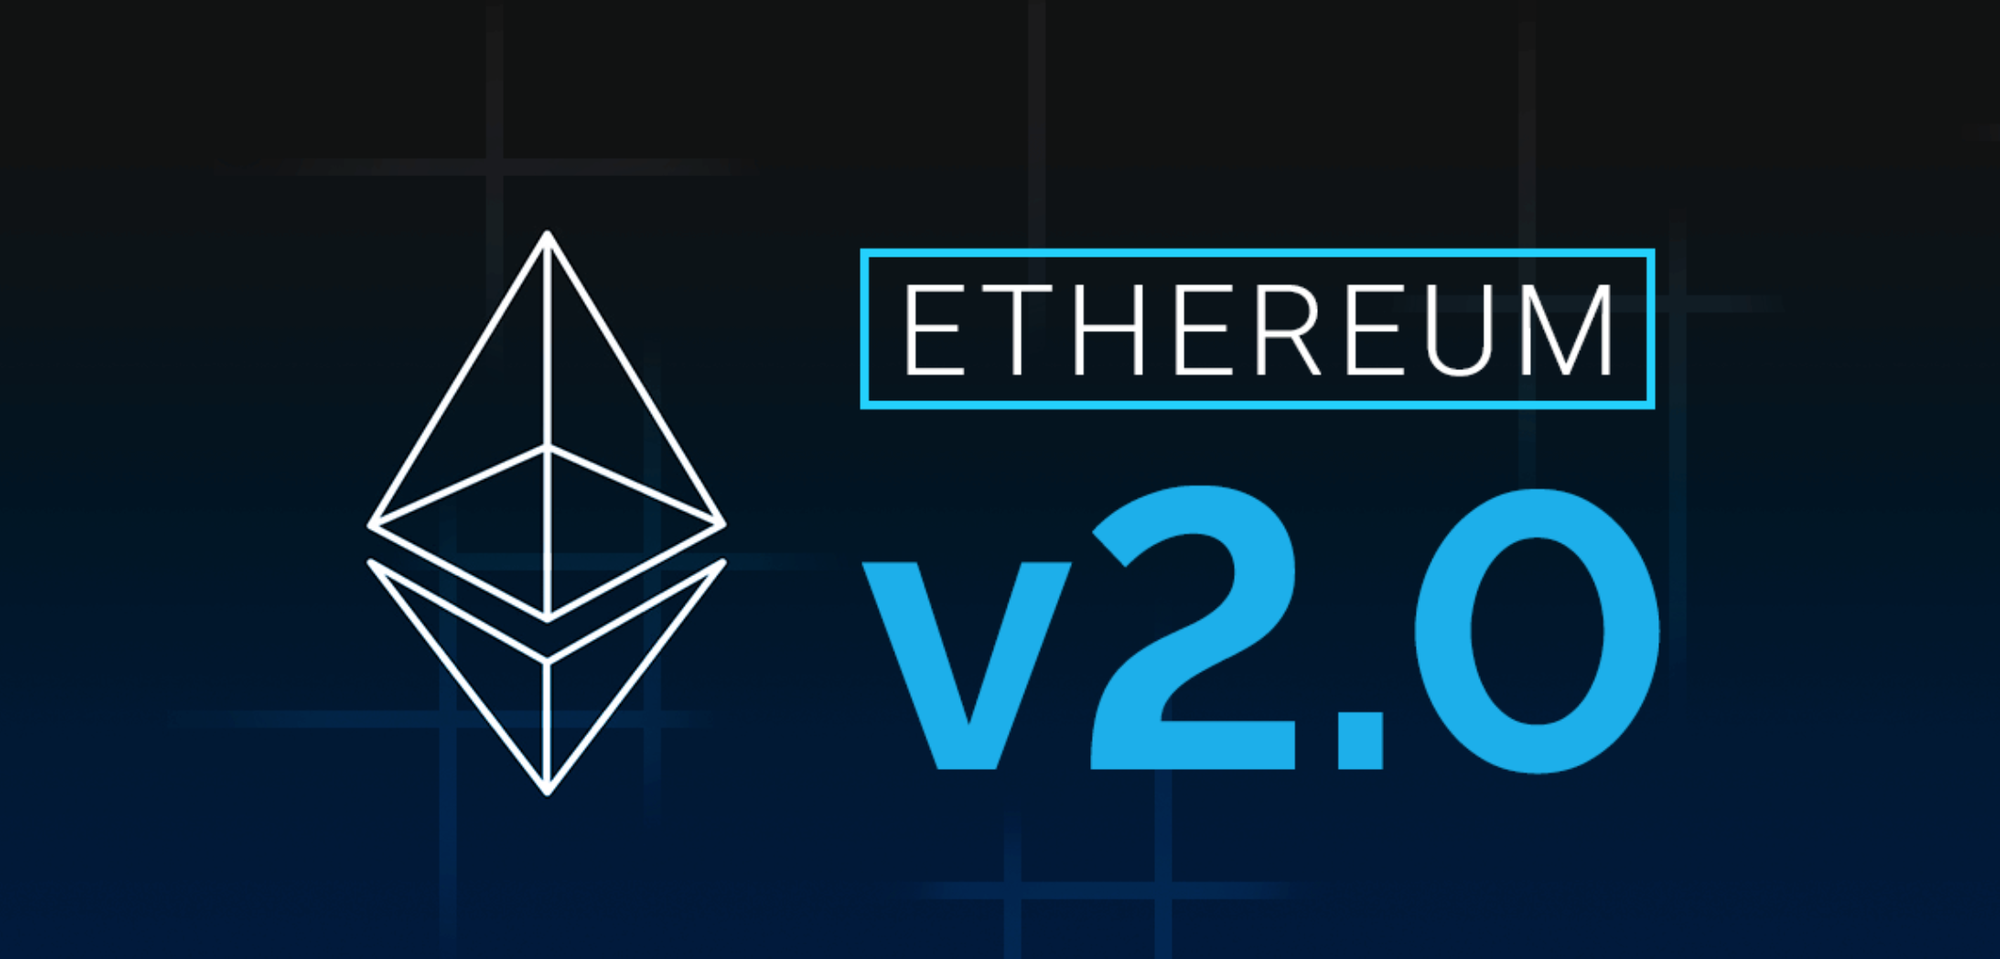 Ethereum 2.0 - What's the Score?